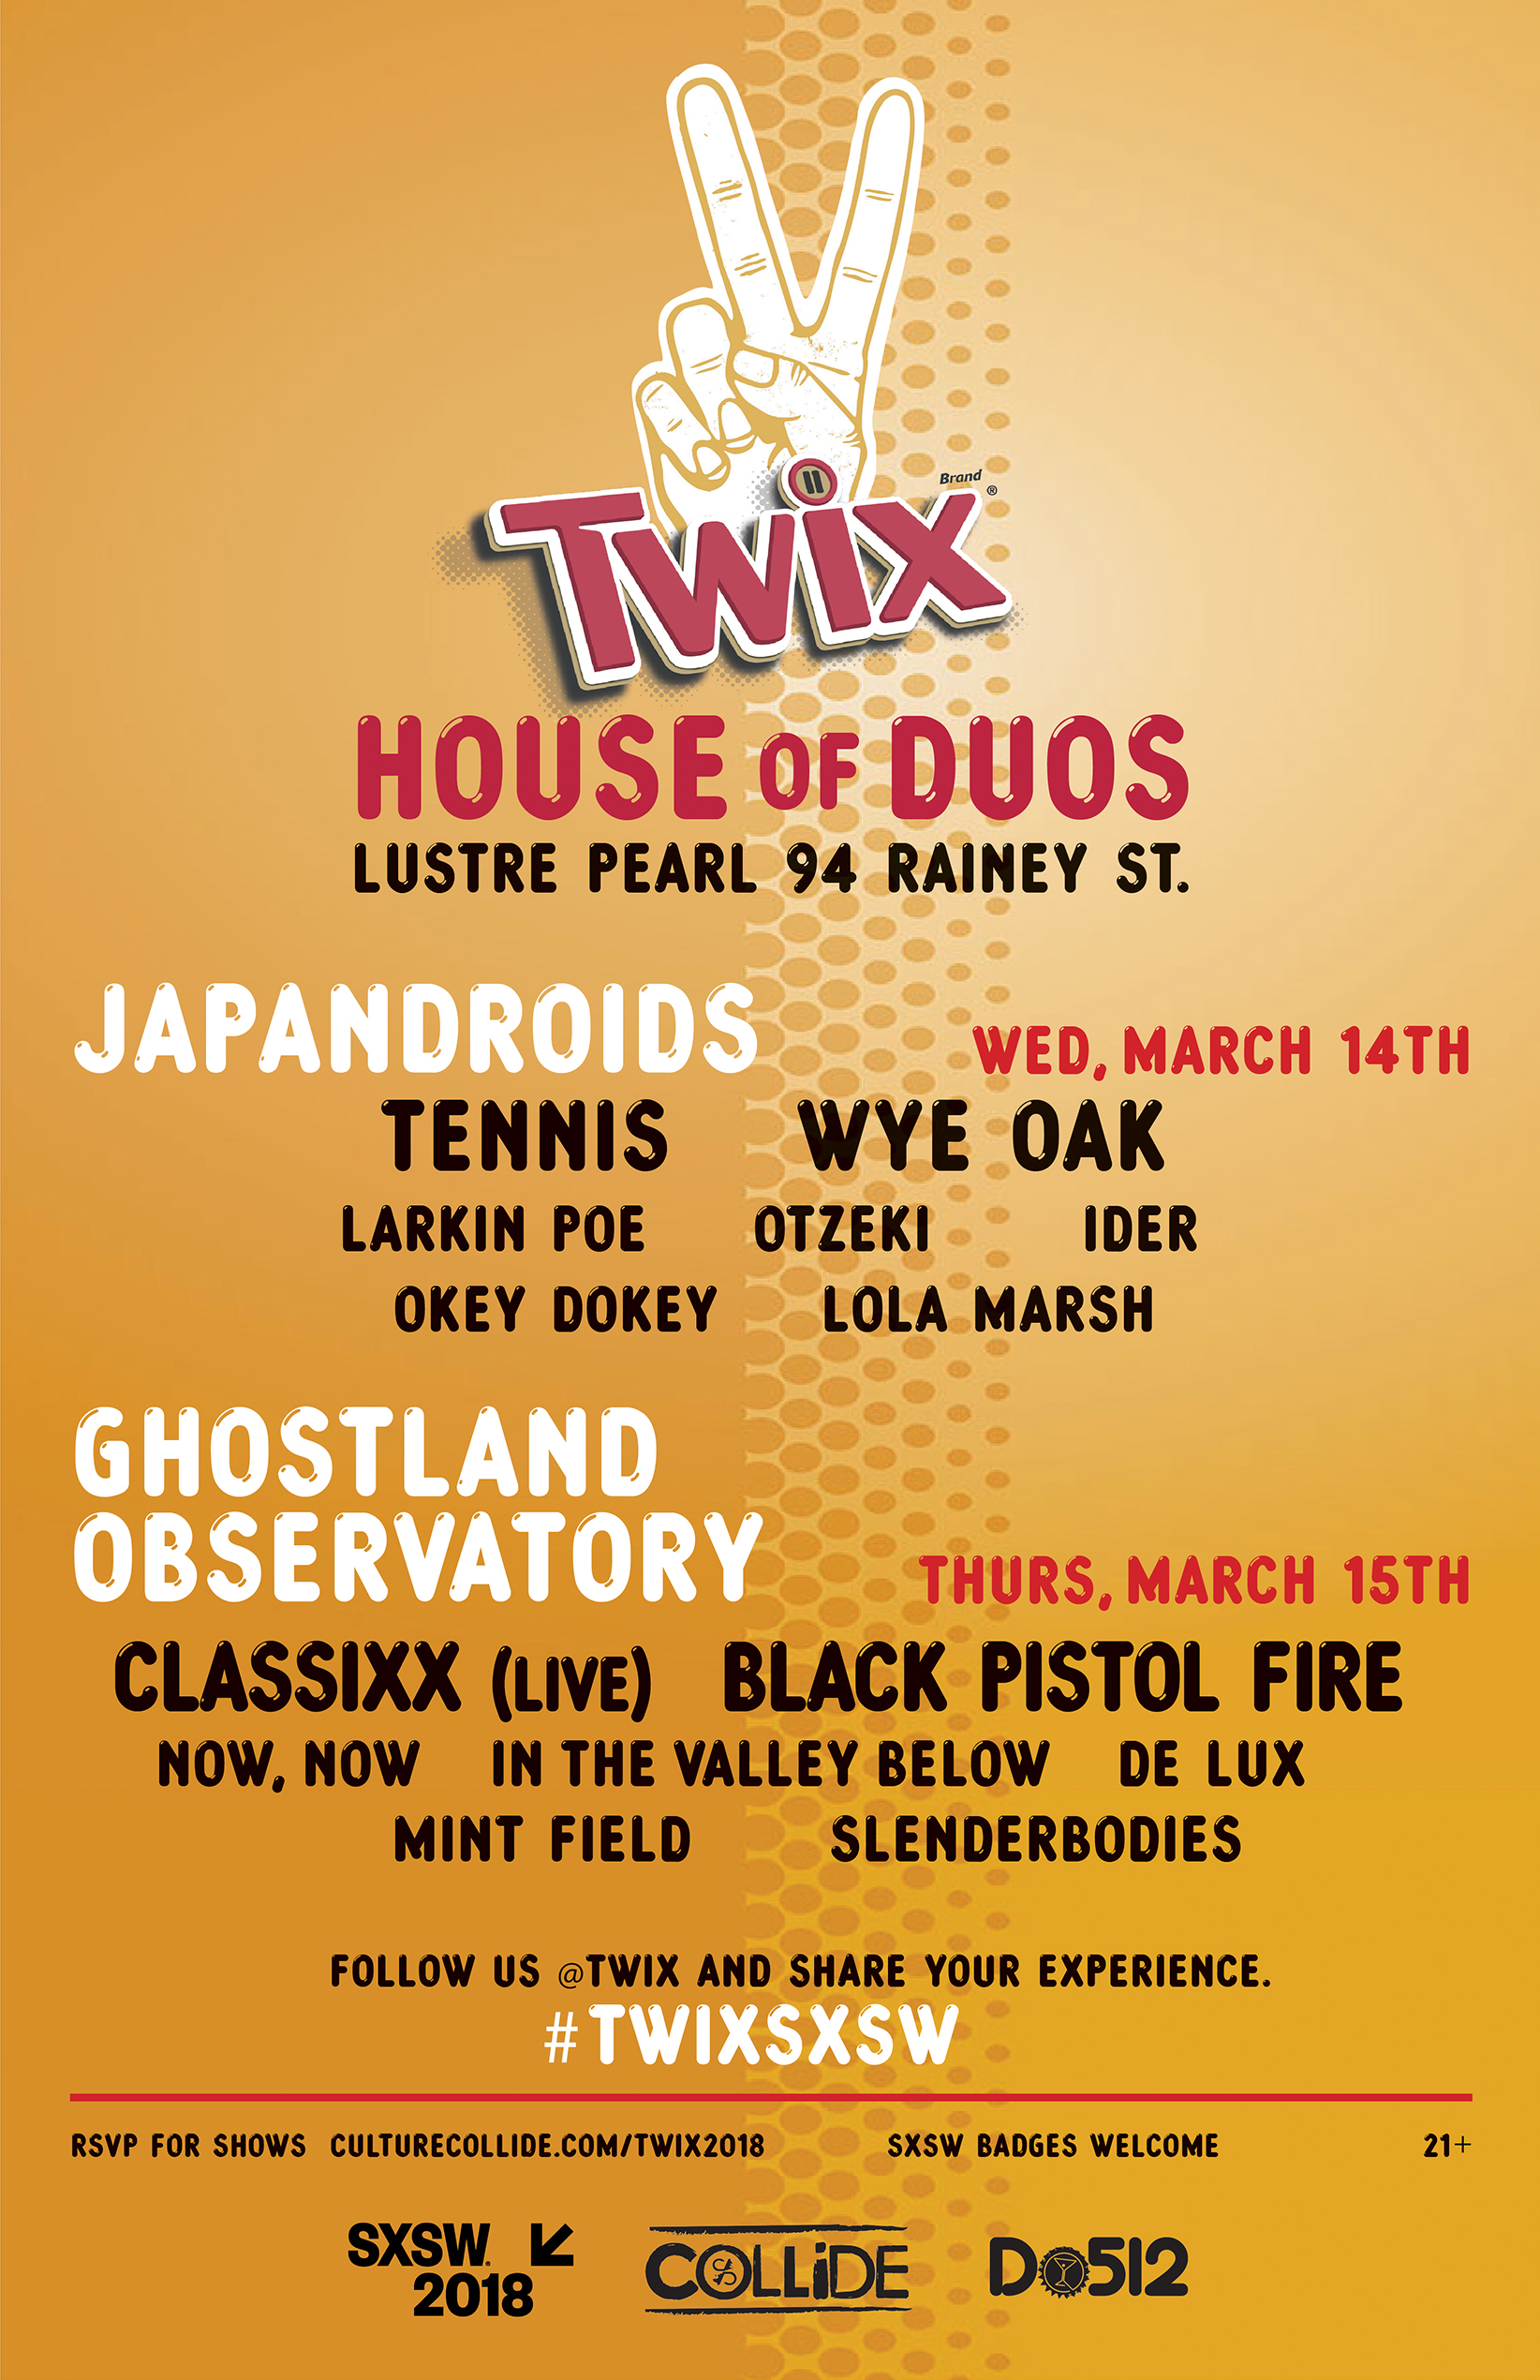 SXSW 2018: TWIX® House of Duos at Lustre Pearl - Culture Collide